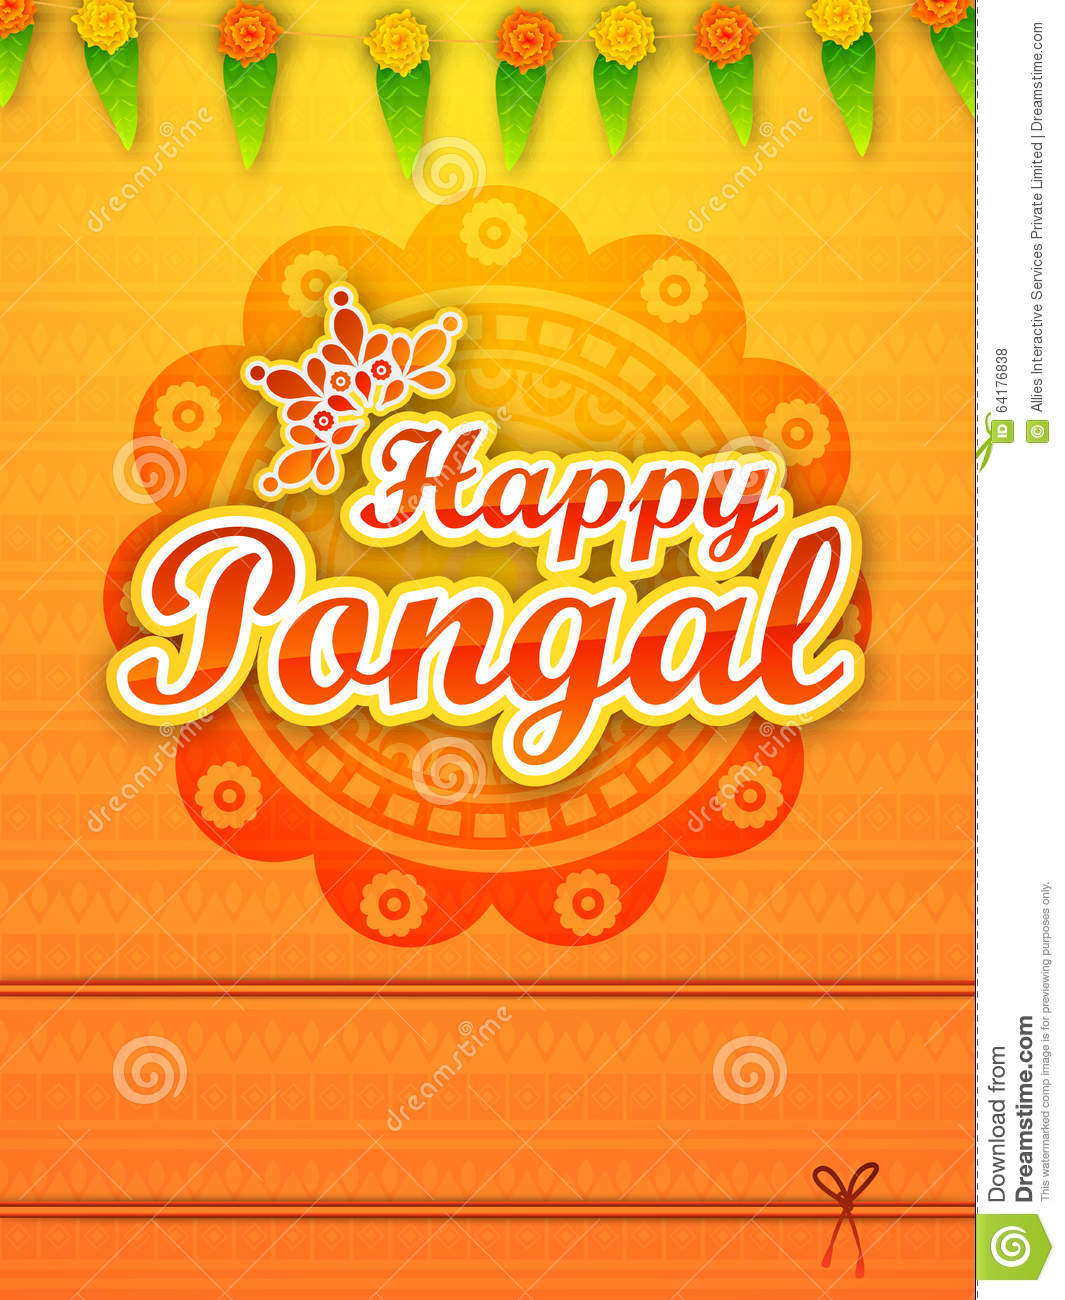 Greeting card for happy pongal celebration stock illustration download greeting card for happy pongal celebration stock illustration illustration of event greeting m4hsunfo